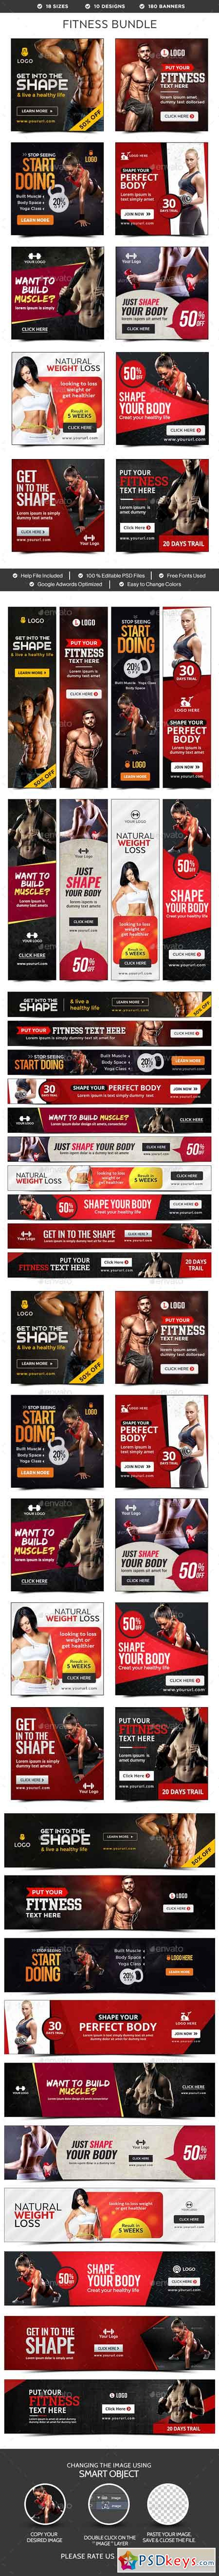 Fitness Banners Bundle - 10 Sets - 180 Banners 19460040